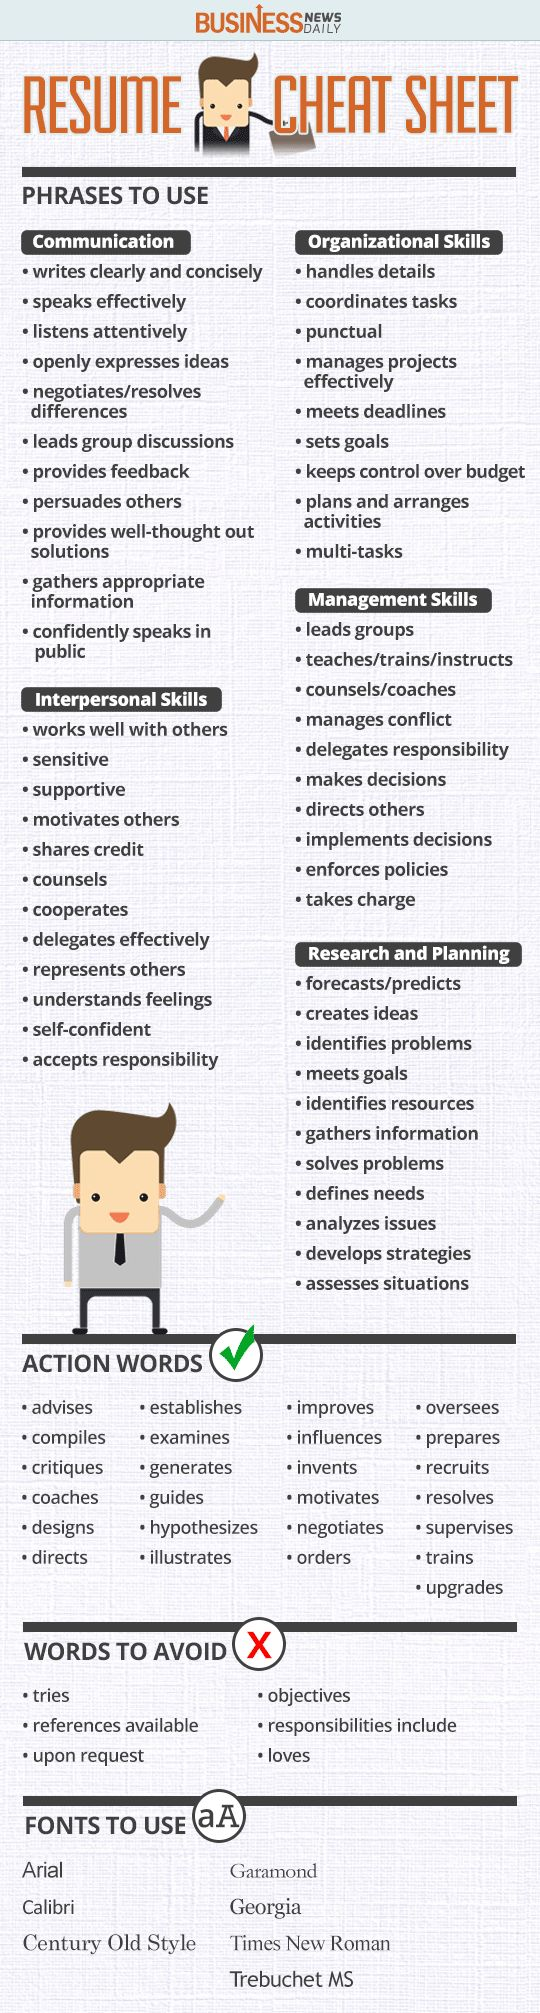 Opposenewapstandardsus  Outstanding  Ideas About Resume On Pinterest  Cv Format Resume Cv And  With Exciting Resume Cheat Sheet Infographic Andrews Almost Done With A Complete Unit On Employment Which With Enchanting Resume Two Pages Also Abilities For Resume In Addition Help Building A Resume And Resume Example For College Student As Well As Write A Resume Online Additionally Sales Coordinator Resume From Pinterestcom With Opposenewapstandardsus  Exciting  Ideas About Resume On Pinterest  Cv Format Resume Cv And  With Enchanting Resume Cheat Sheet Infographic Andrews Almost Done With A Complete Unit On Employment Which And Outstanding Resume Two Pages Also Abilities For Resume In Addition Help Building A Resume From Pinterestcom